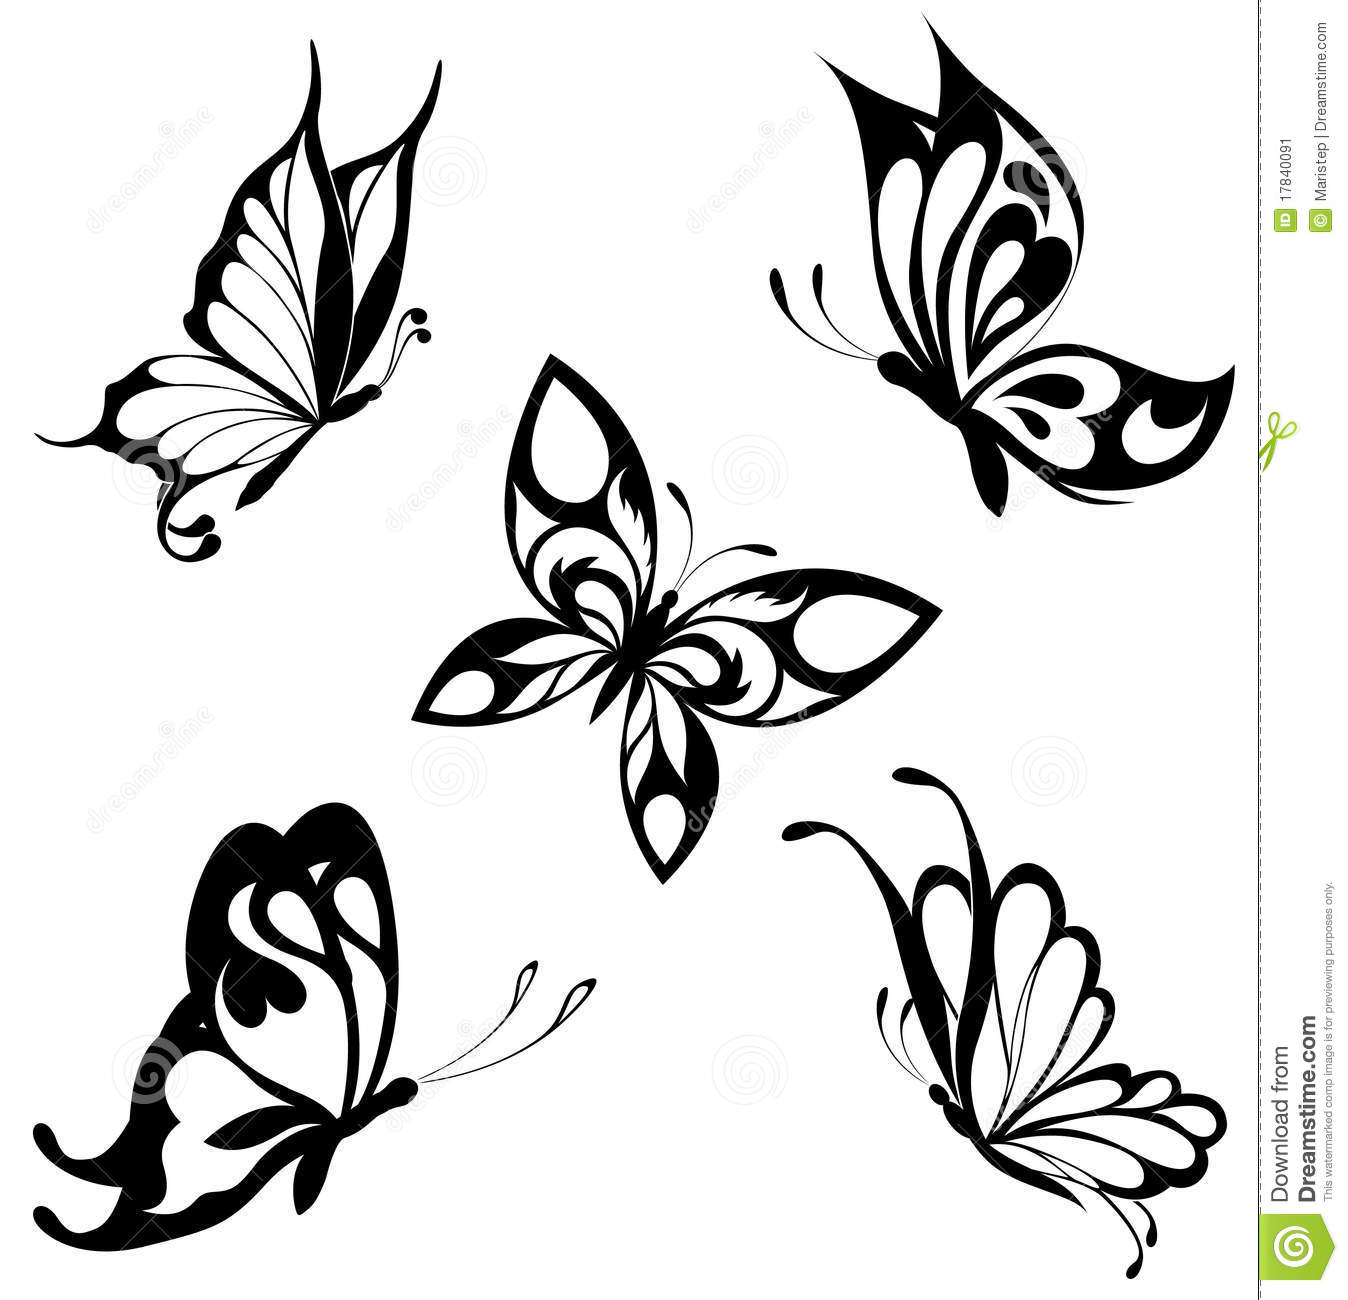 butterfly designs black and white